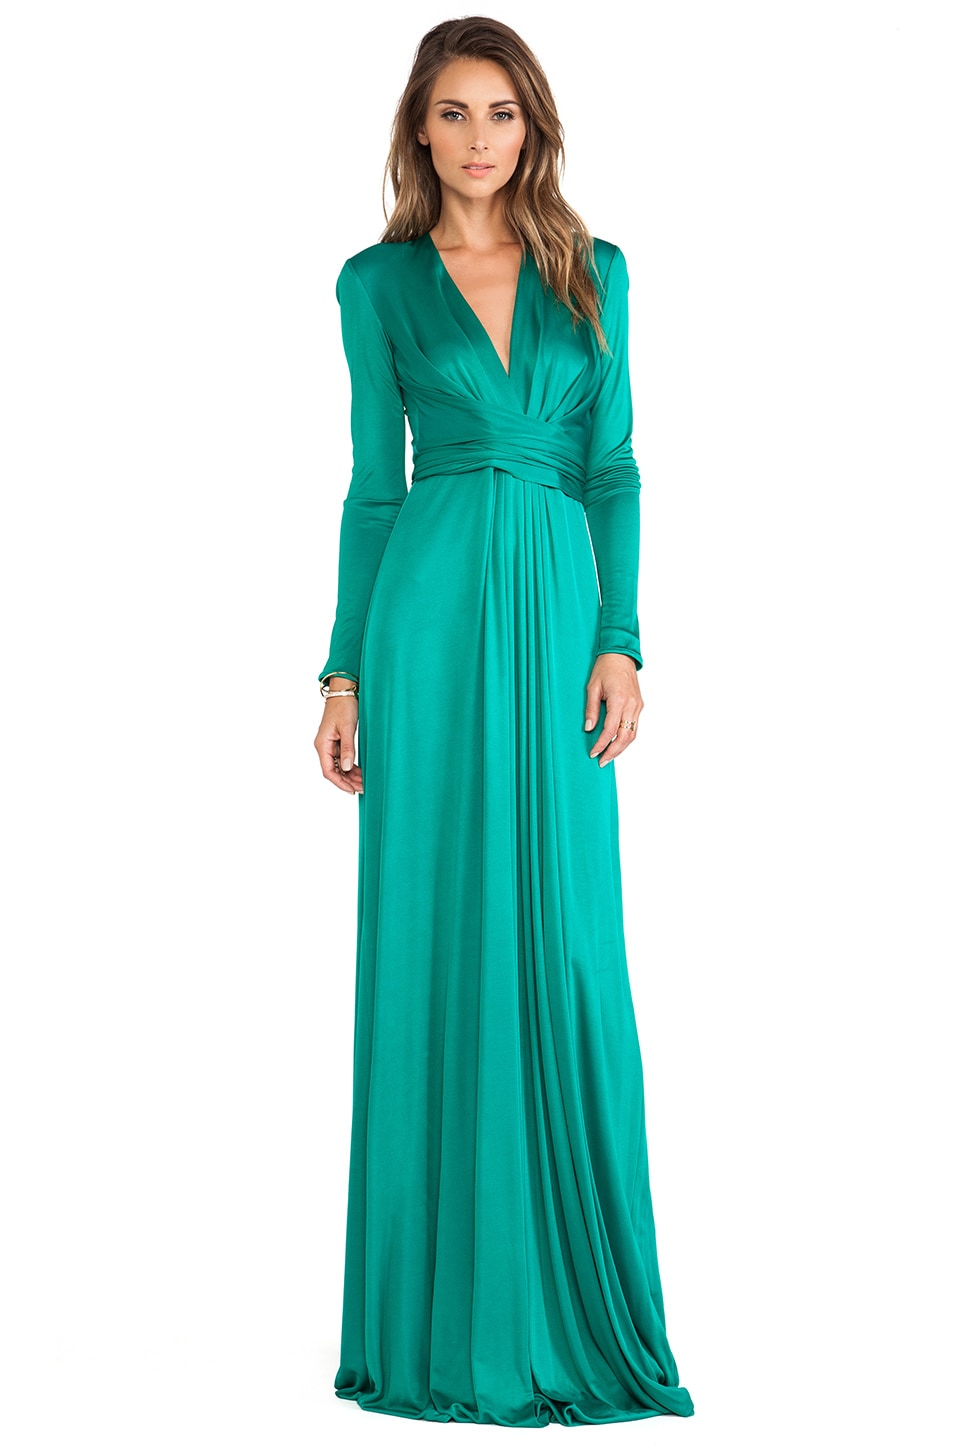 Issa Florence Long Sleeve Maxi Dress in Jade